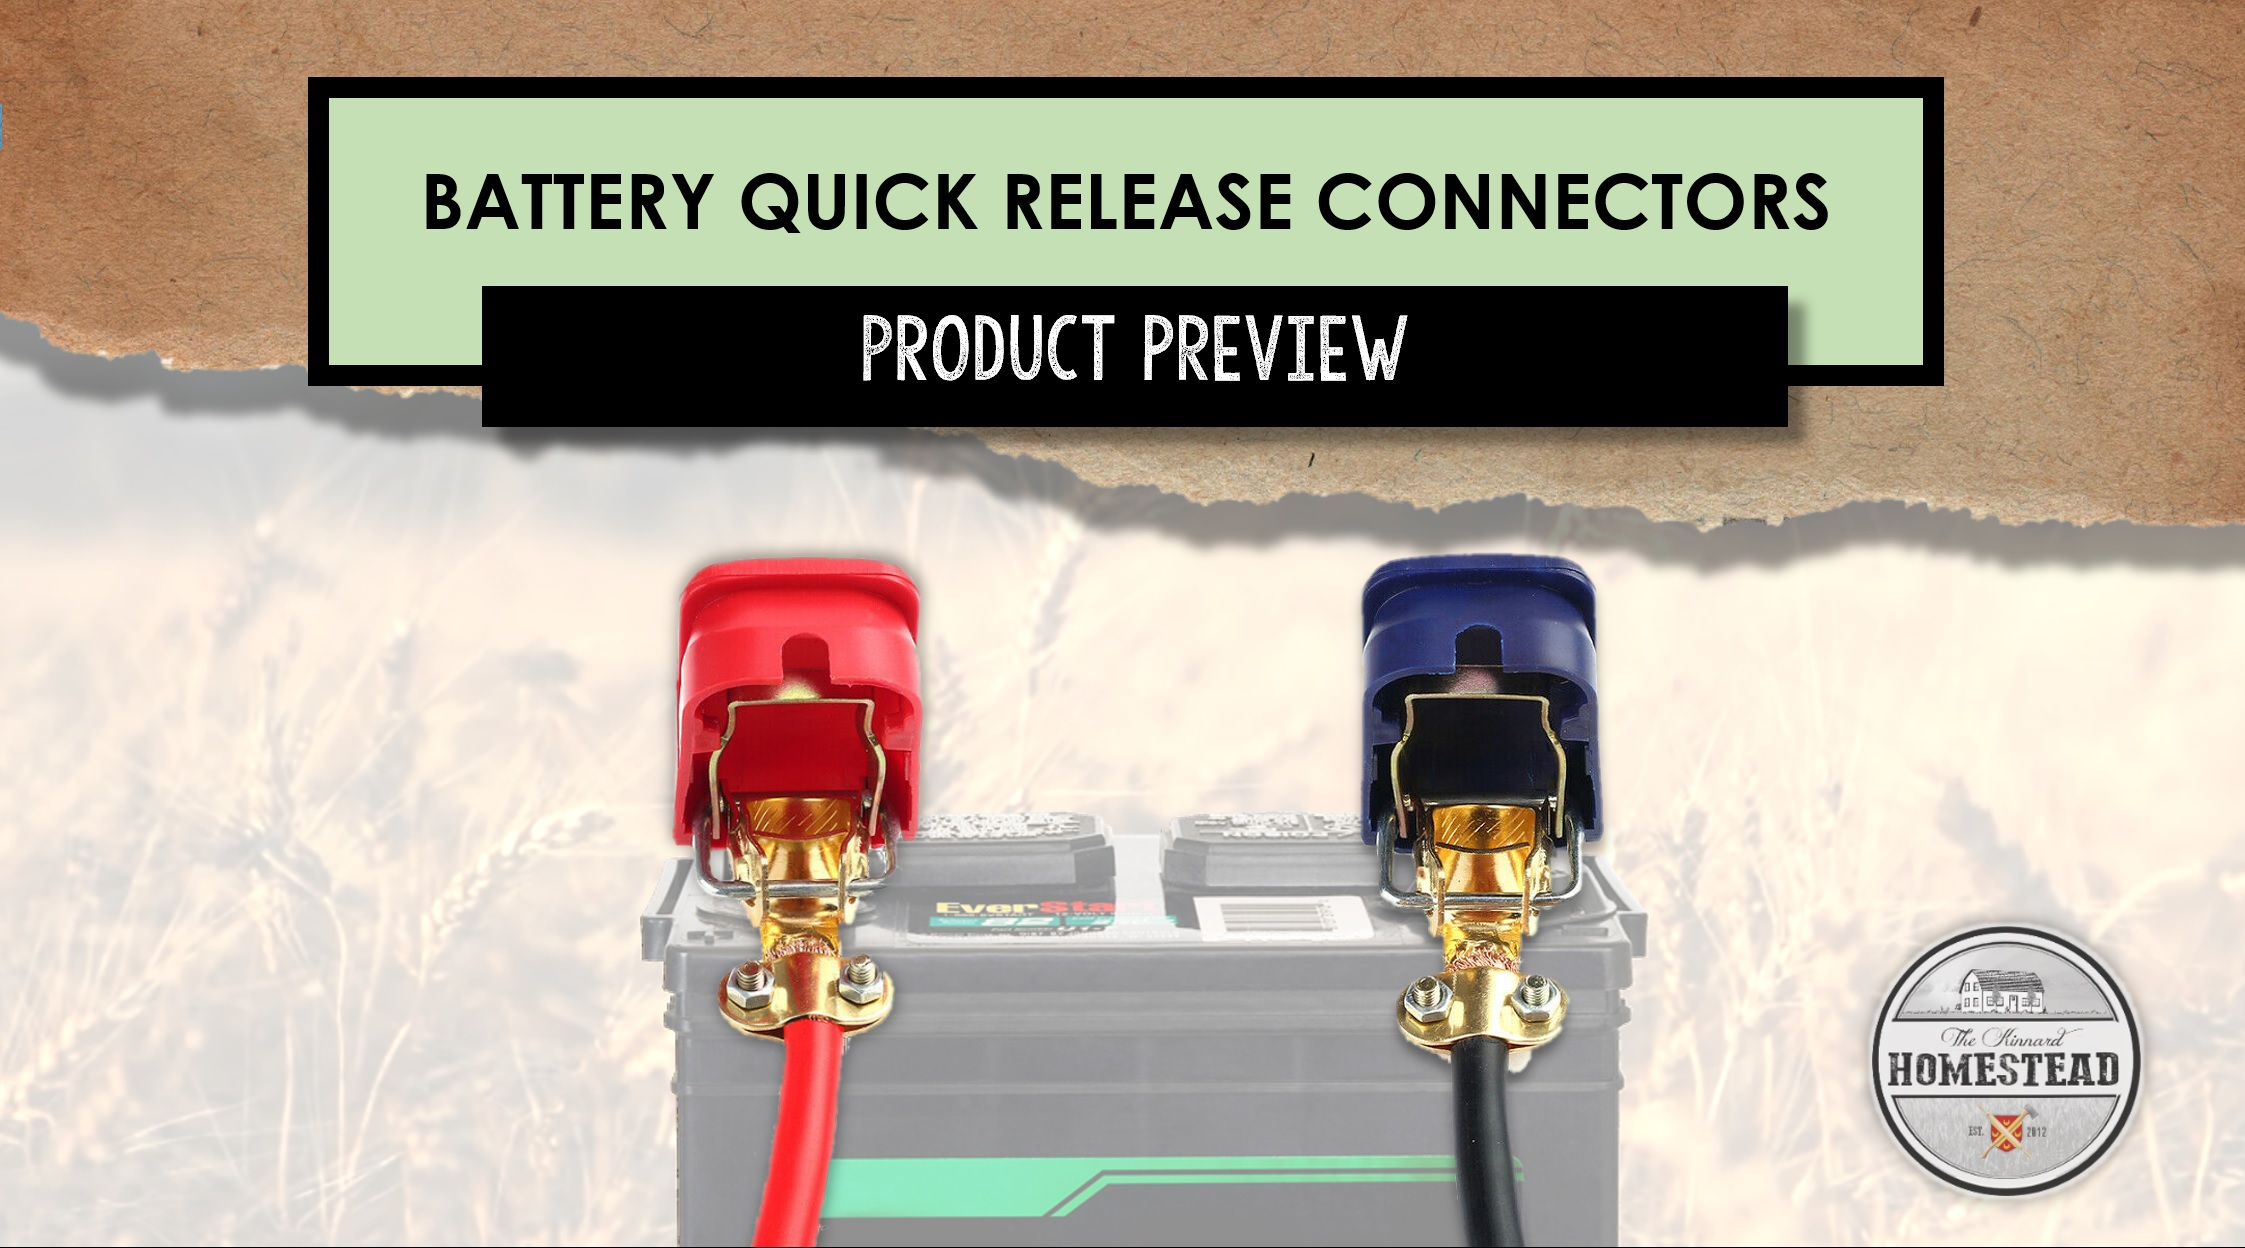 Battery Quick Release Connectors | Product Preview